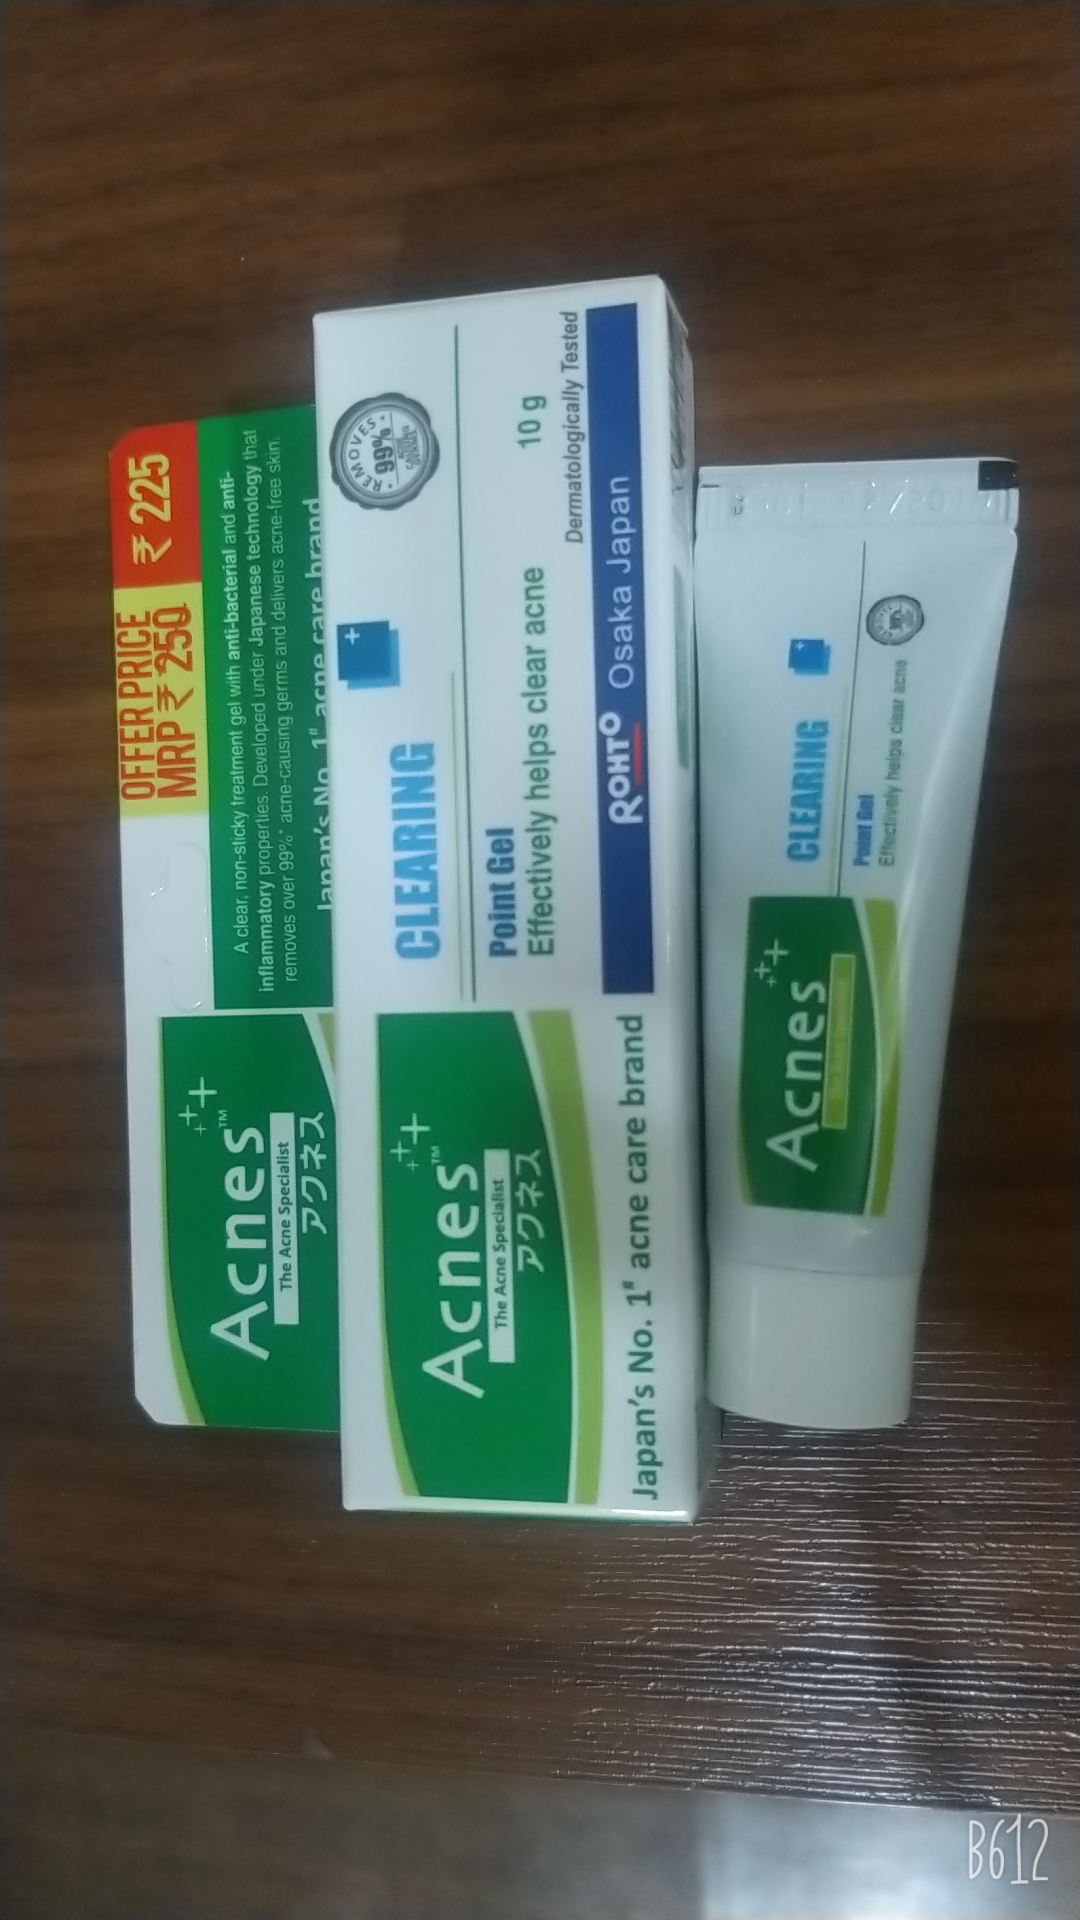 Acnes Clearing Point Anti-Pimple Gel-My Daily Essential-By trunwal-1